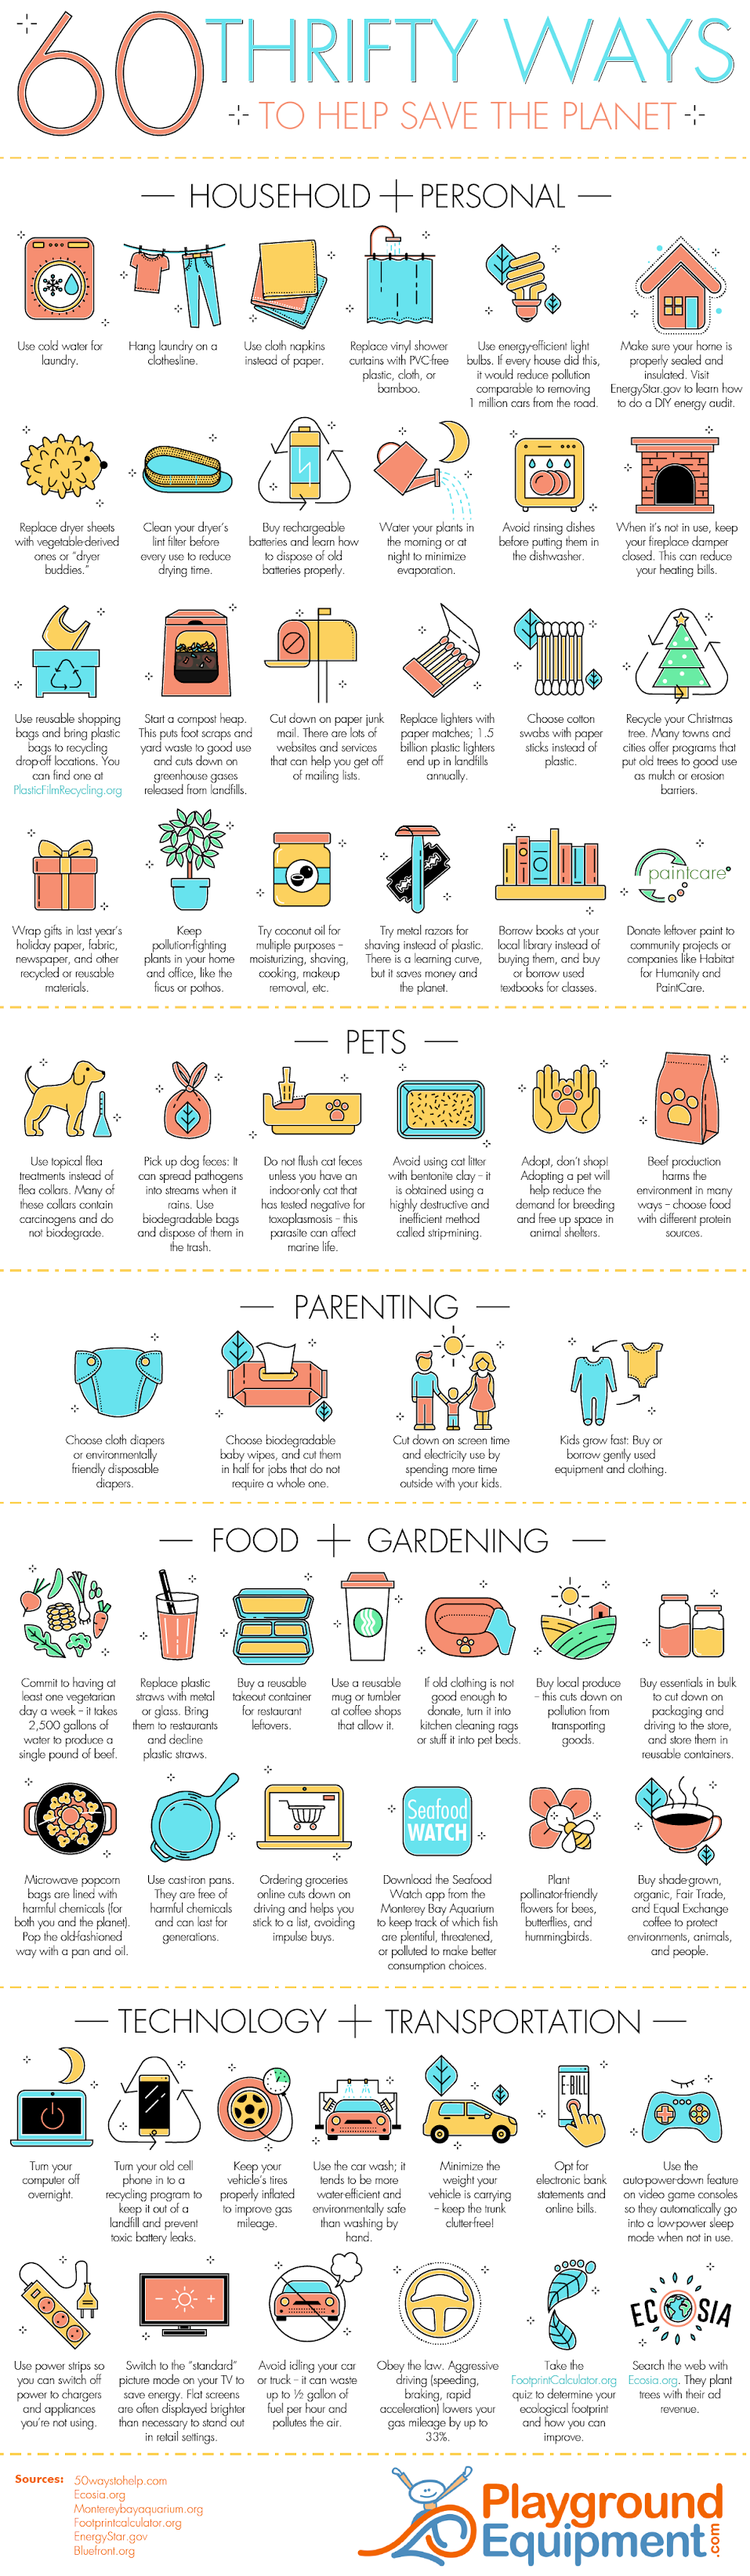 60 Thrifty Ways to Help Save the Environment #infographic